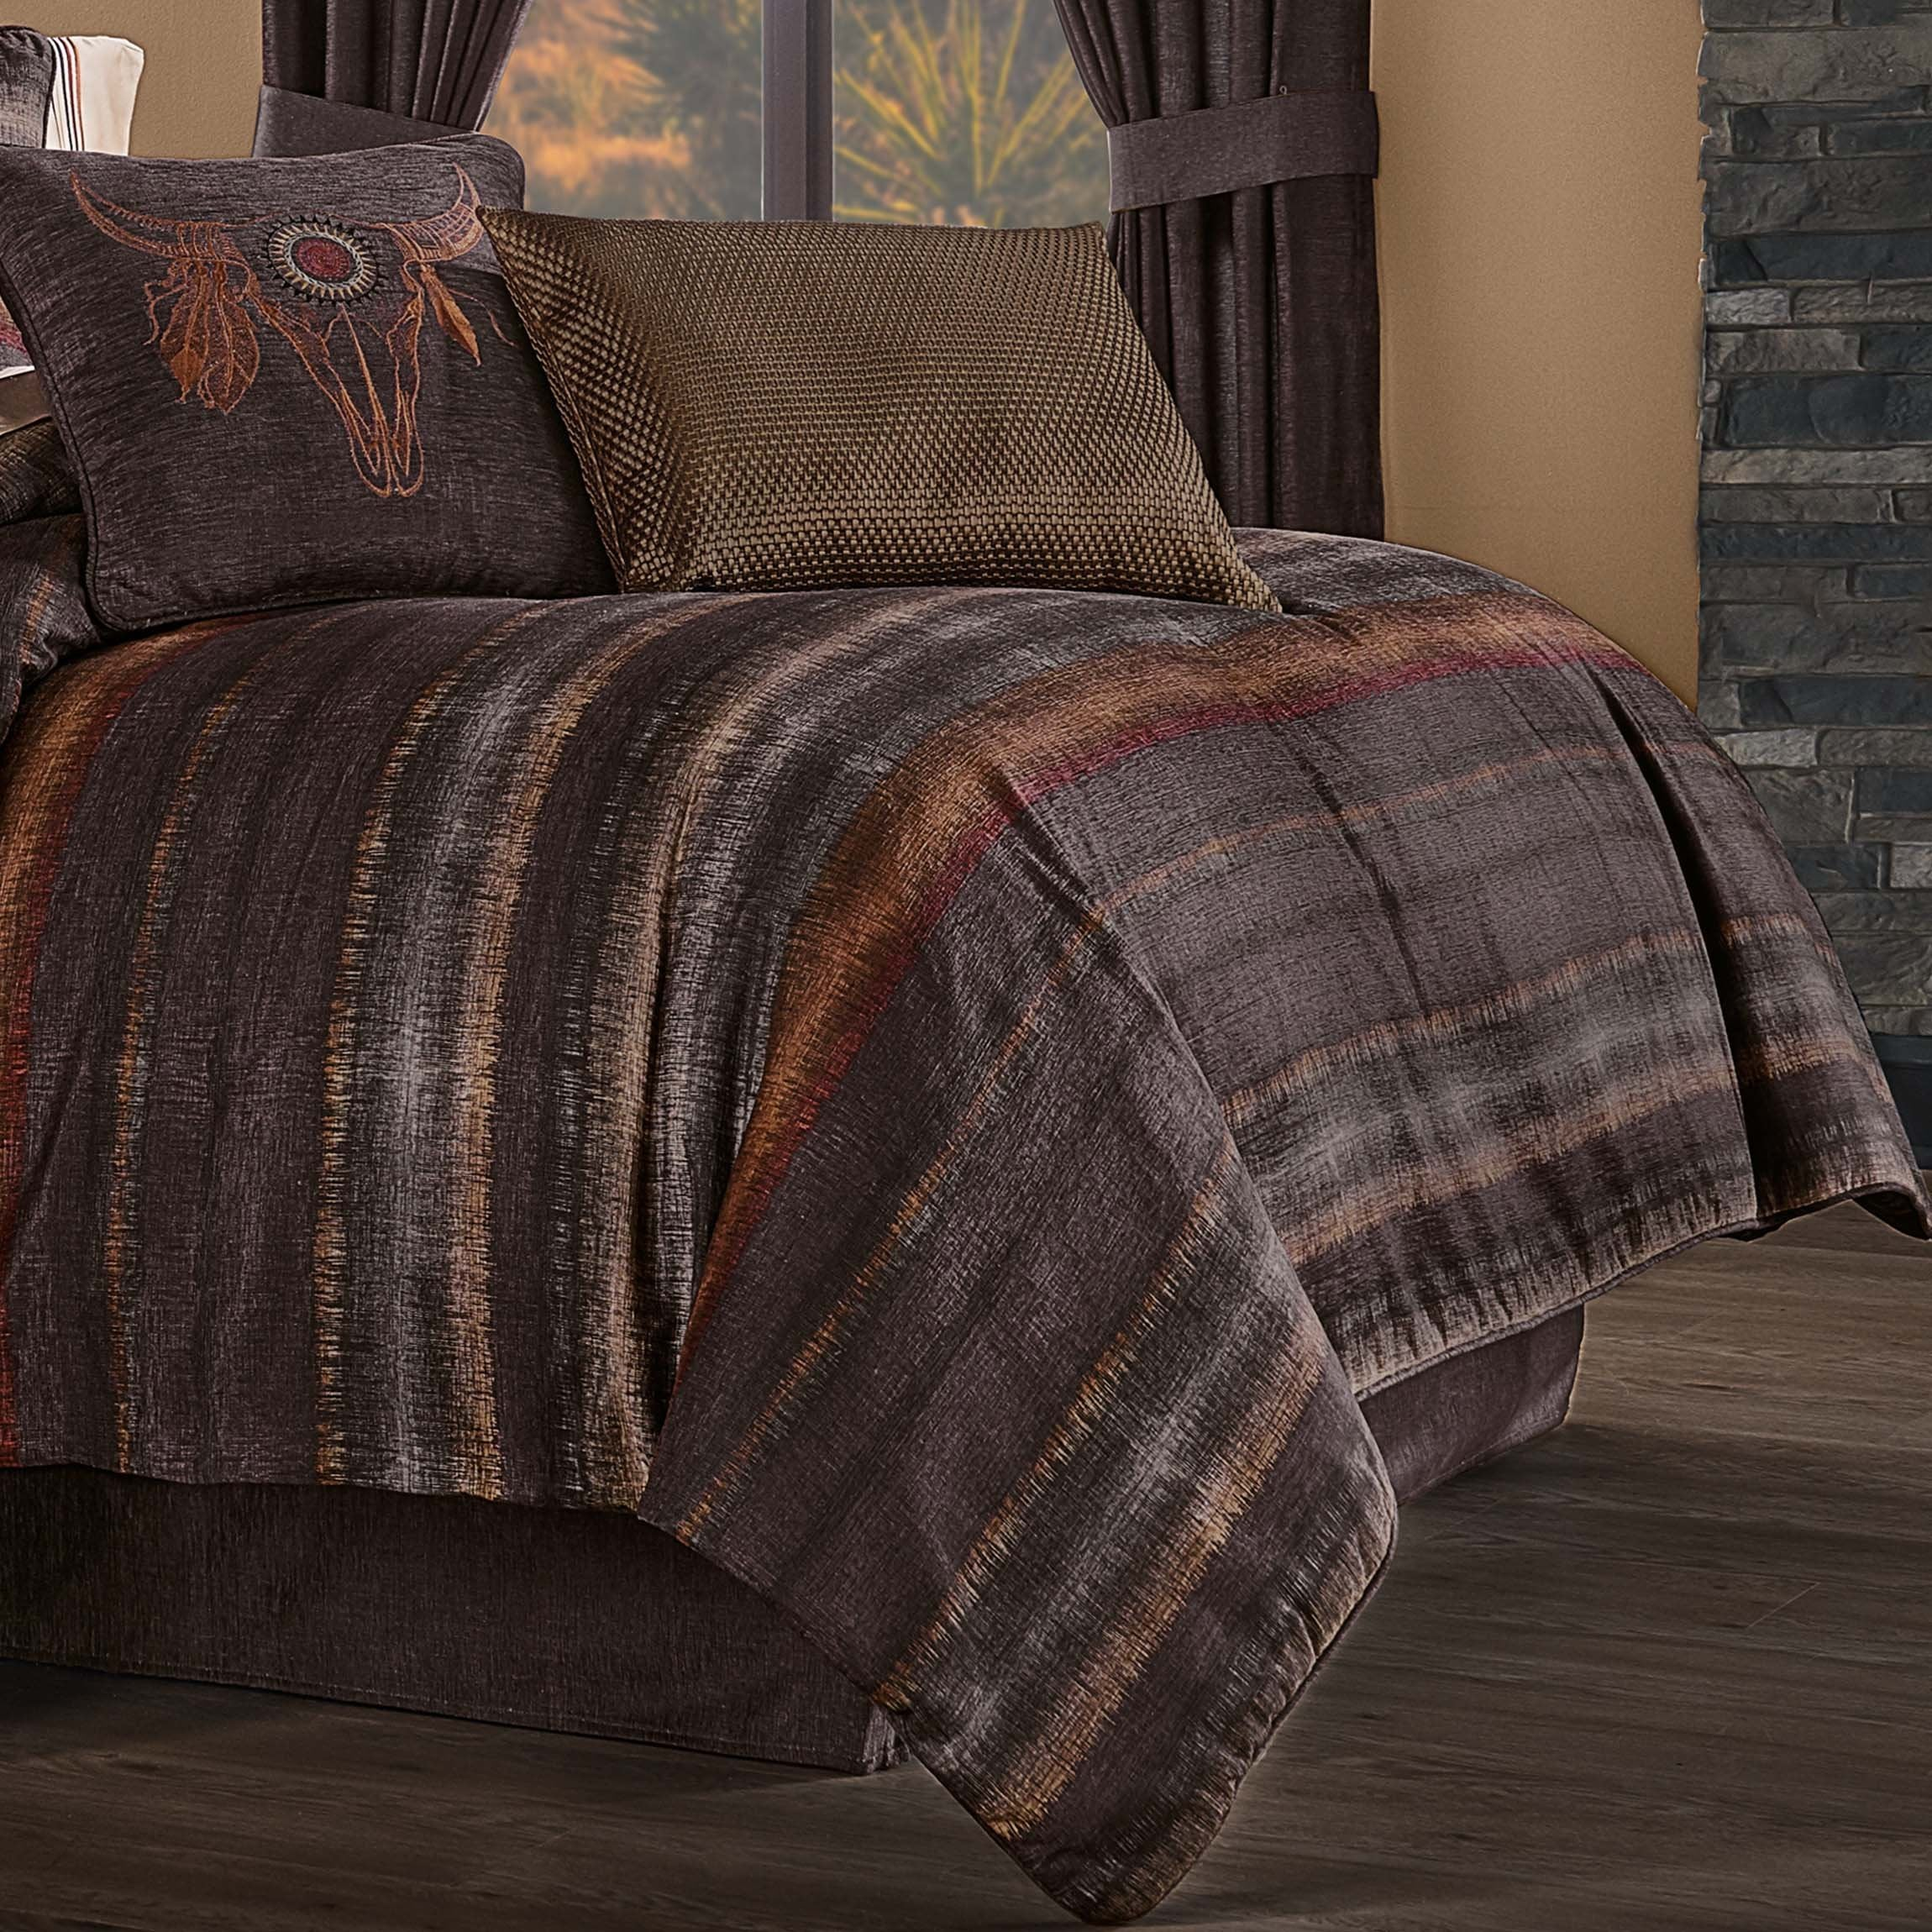 Mesa Chocolate 4-Piece Comforter Set [Luxury comforter Sets] [by Latest Bedding]